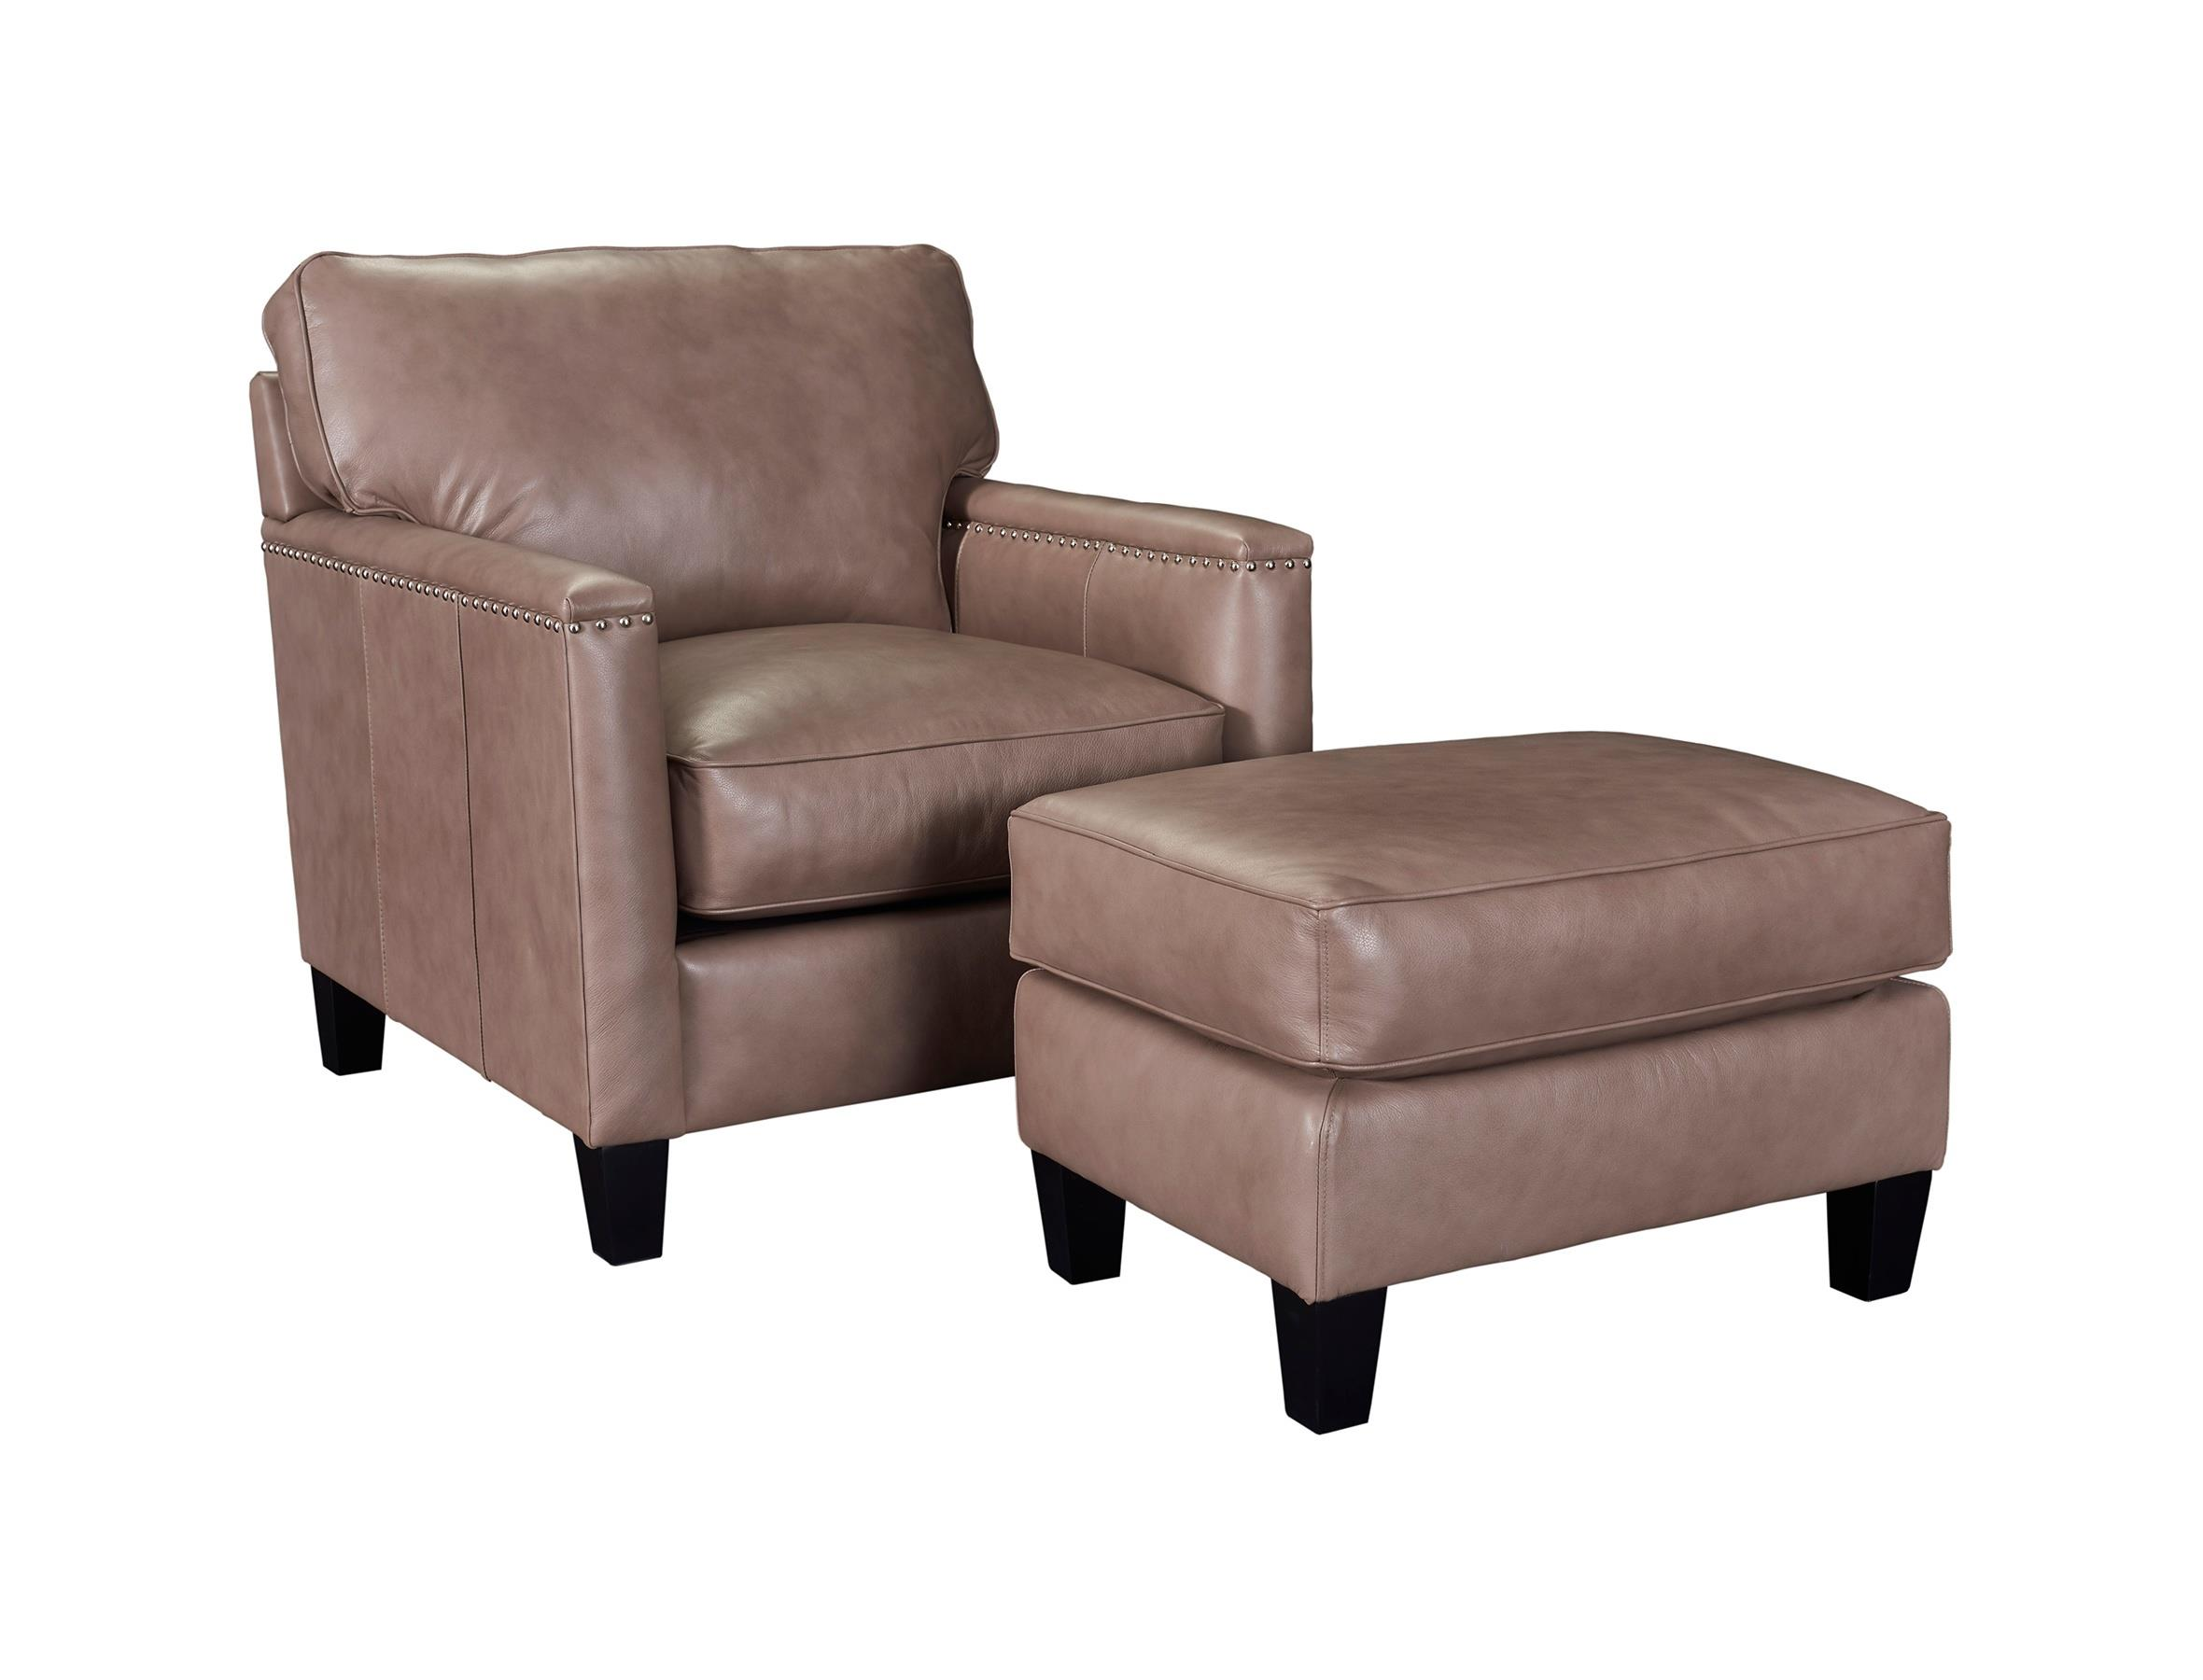 Broyhill Furniture Lawson Chair and Ottoman Set - Item Number: L4254-0+5-0017-83